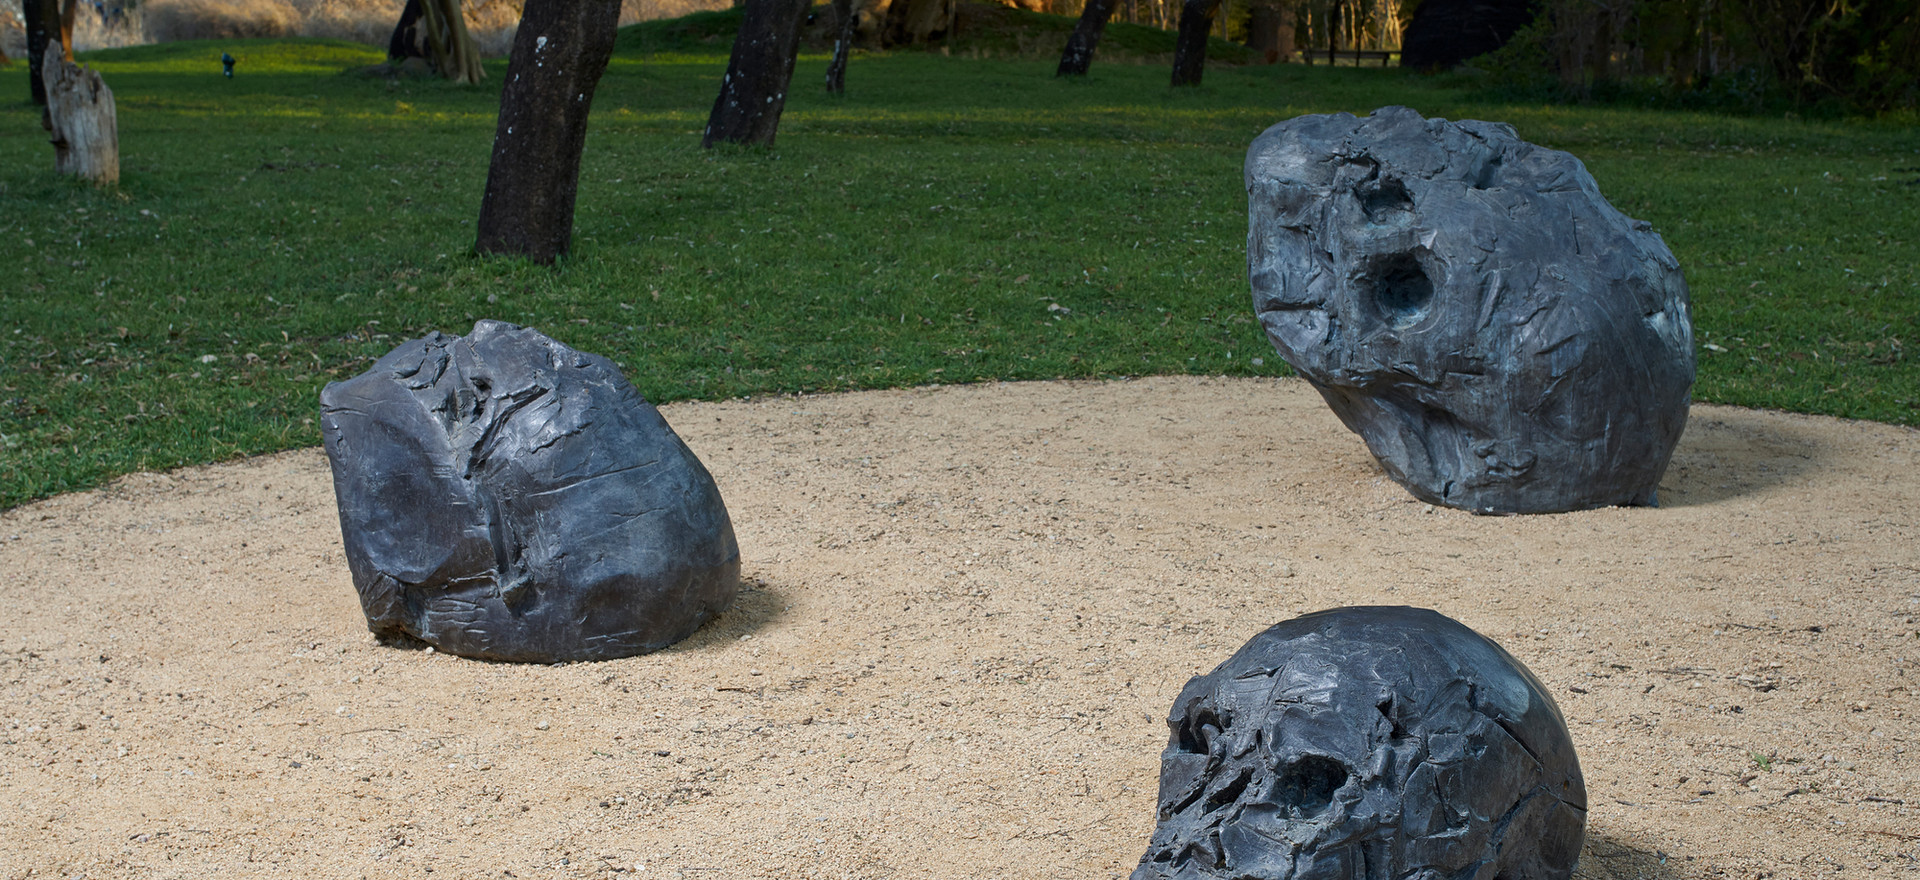 'I sculpt because I am curious to know why I fail', 33 x 57 x 33 cm (front), Elbowed 52 x 63 x 45 cm  (back left) and Heart Head 83 x 100 x 68 cm (back right) installed at Nirox Sculpture Park, 2014.